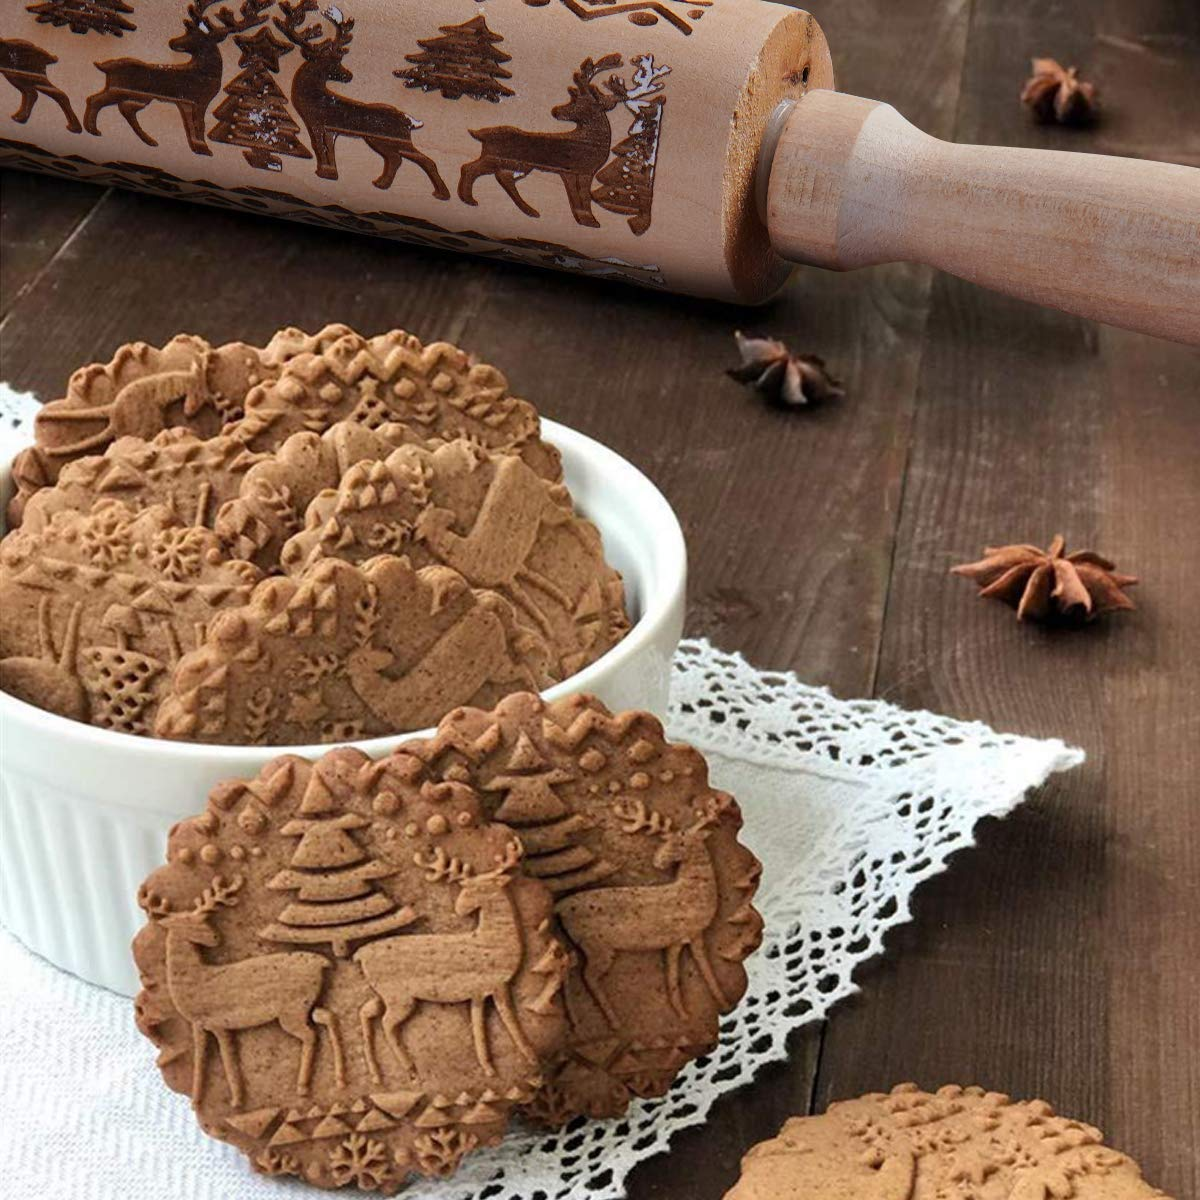 Christmas Wooden Rolling Pins Engraved Embossing Rolling Pin with Christmas Symbols for Baking Embossed Cookies (43x5cm),7 Cookie Cutters Included